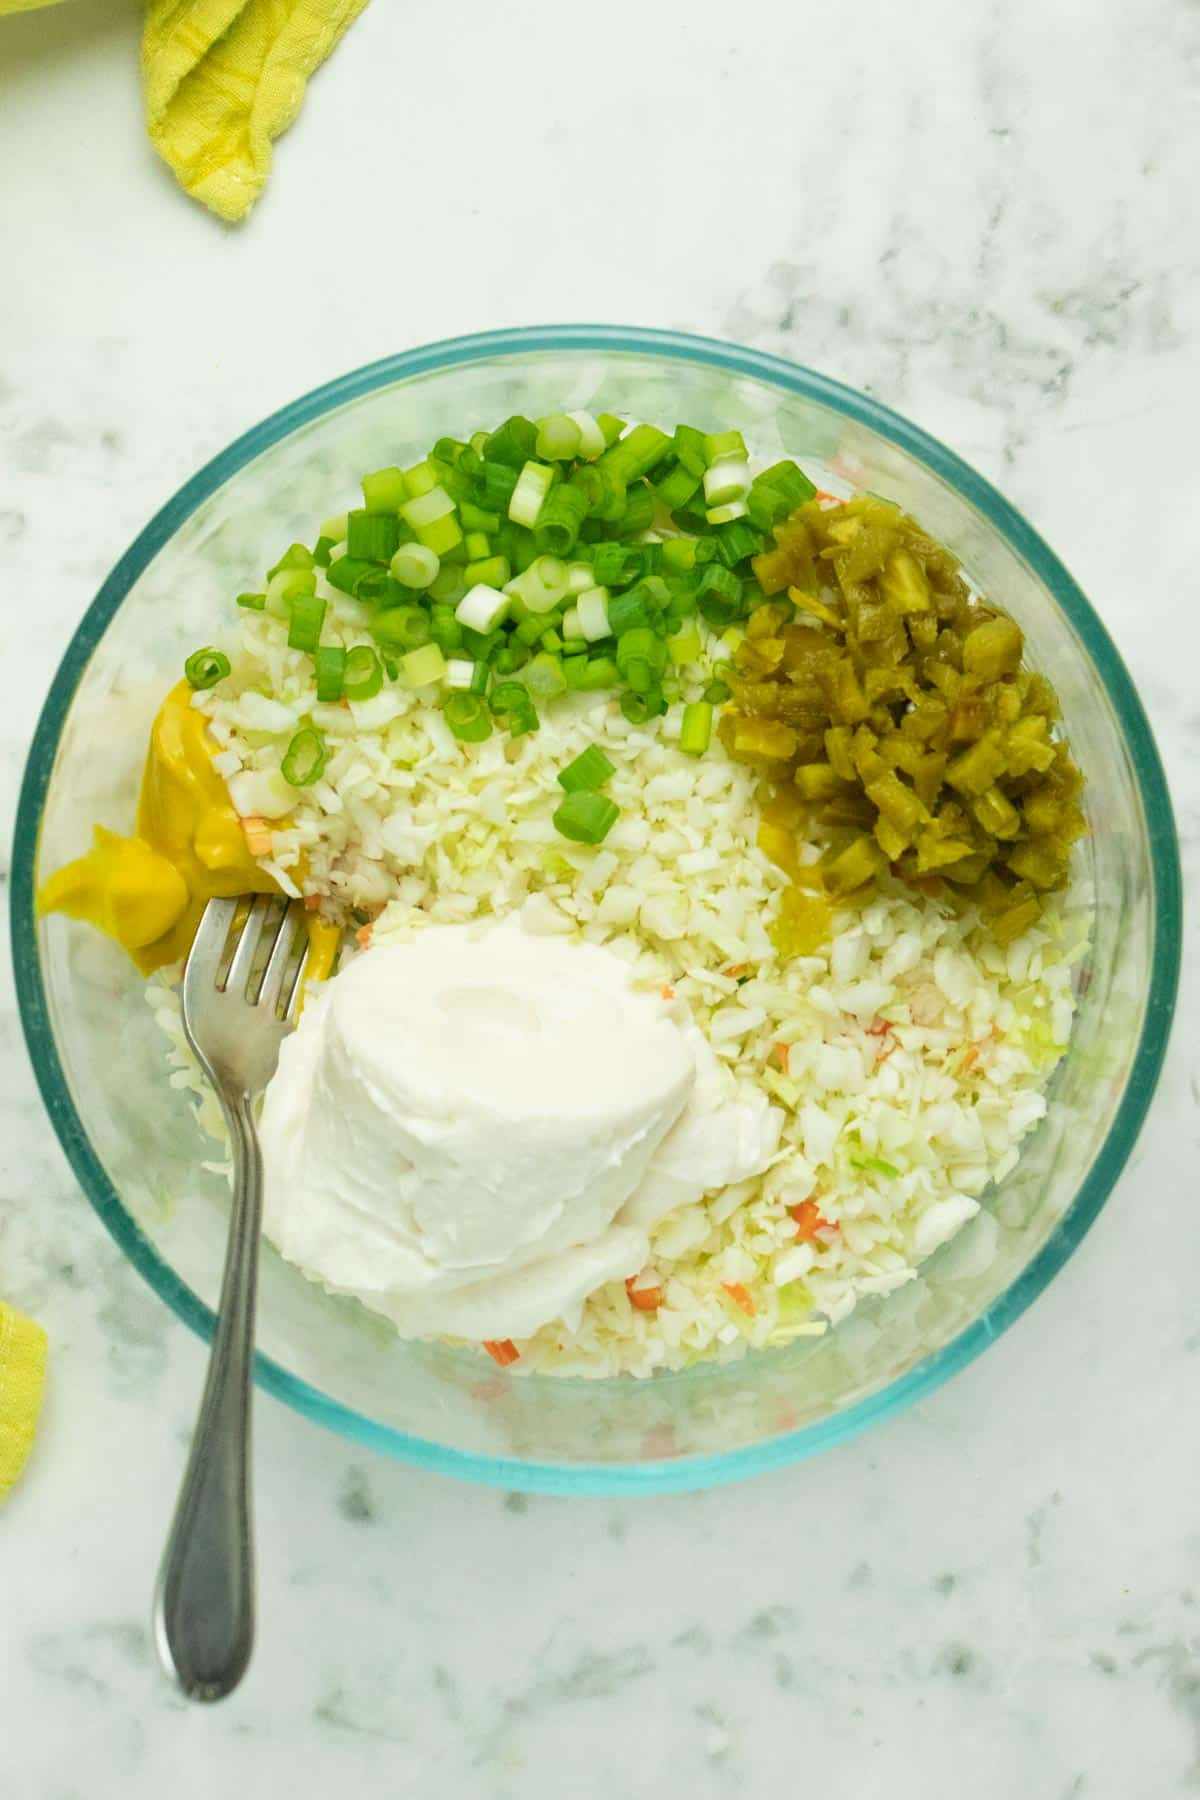 cabbage in a mixing bowl with vegan mayo, yellow mustard, green onion, and pickled jalapeno